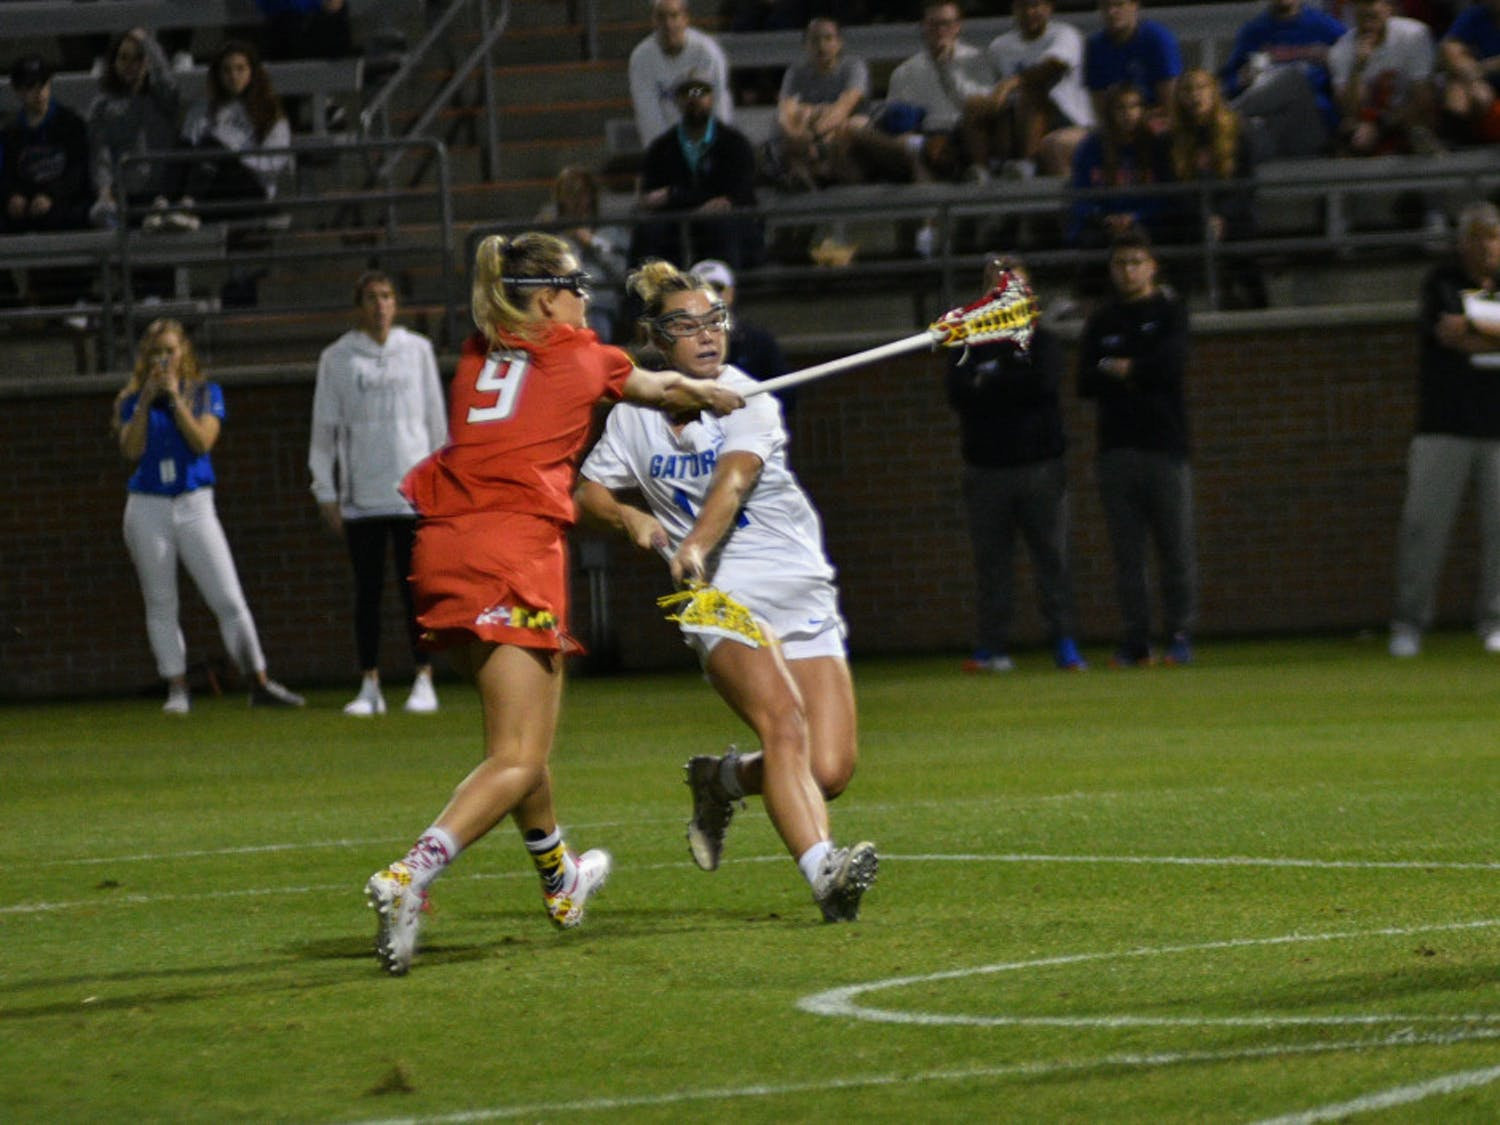 Attacker Lindsey Ronbeck scored three goals in Florida's win over Temple on Saturday.